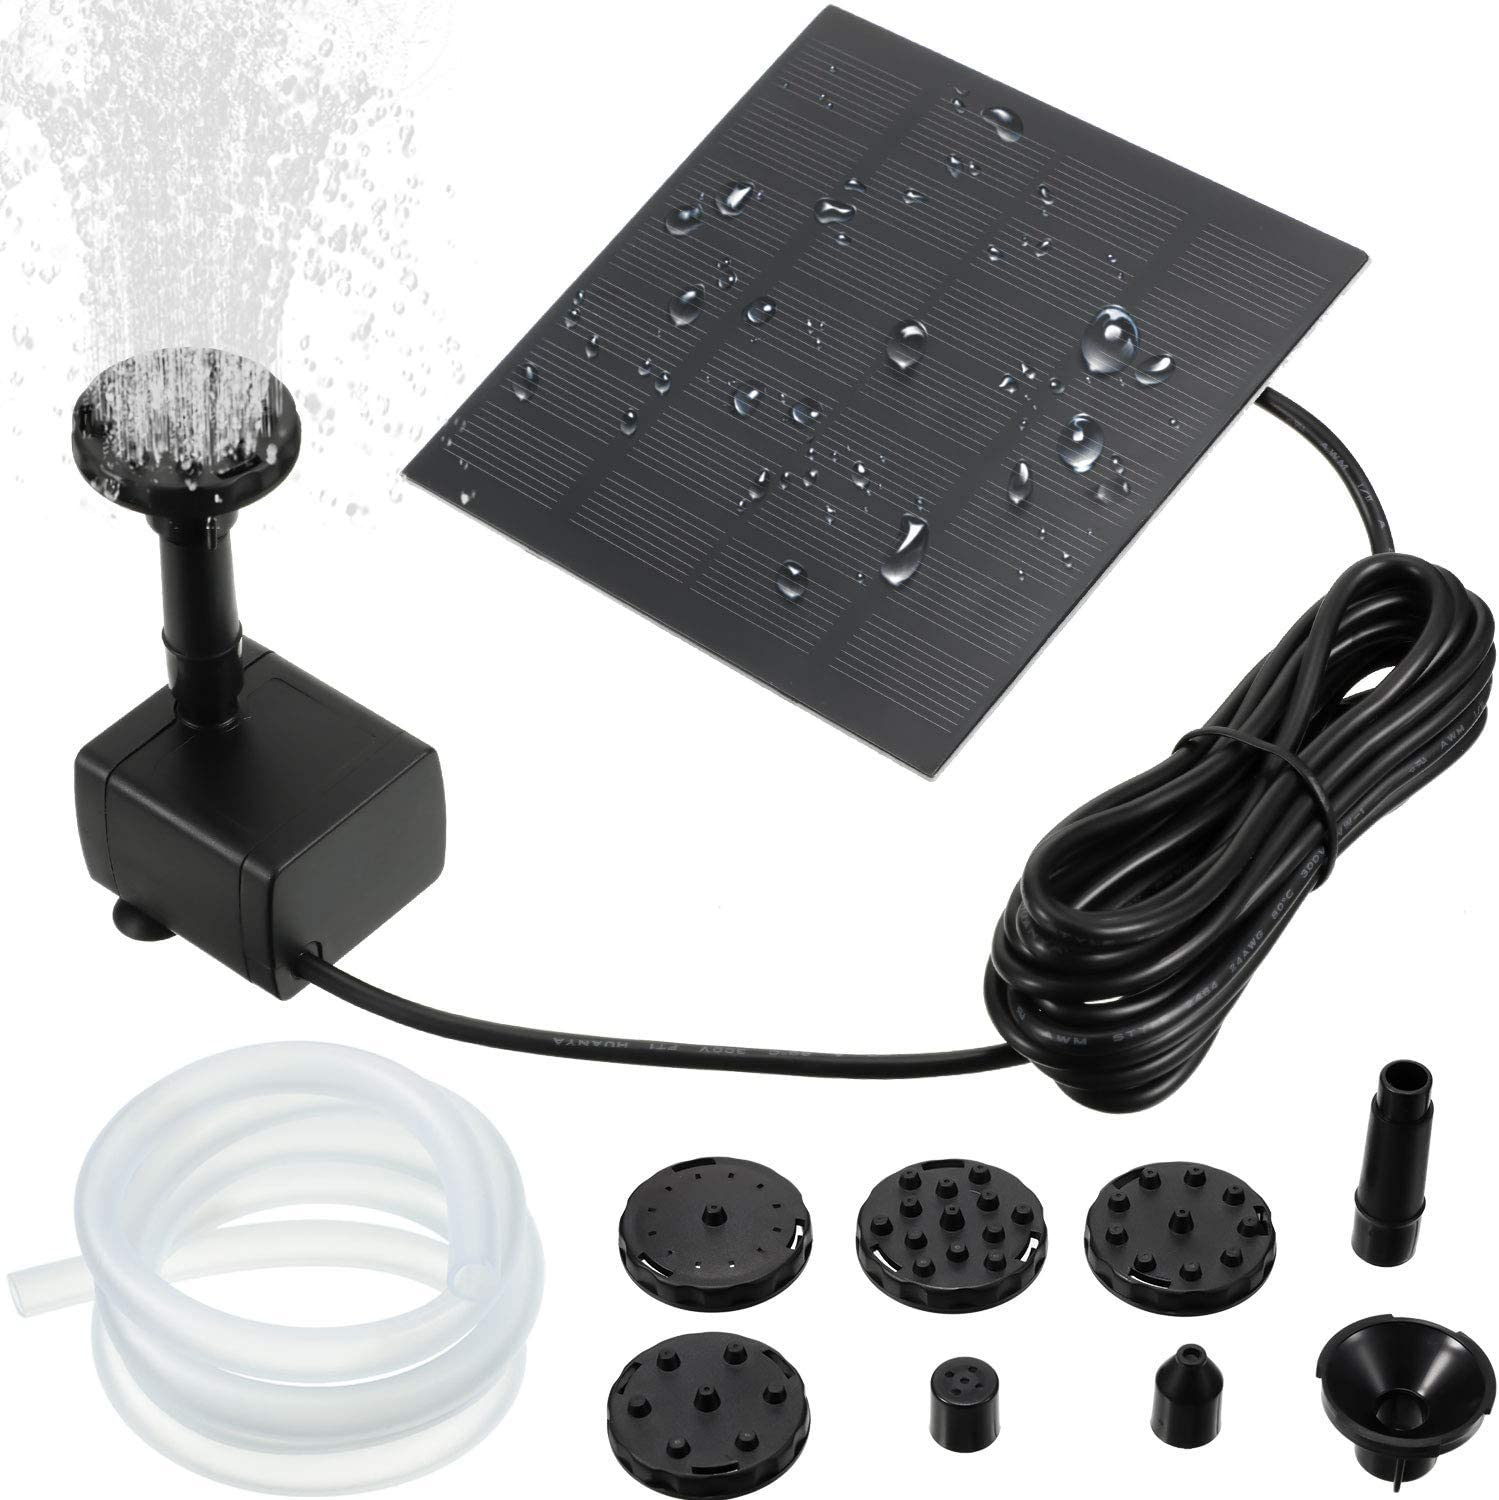 Solar Fountain Pump 1.5W 200L/H Solar Powered Panel Water Pump Garden Floating Pump with 6 Nozzles, Silicone Clear Tubing for Garden, Pool, Pond, Aquarium, Fountain Supplies